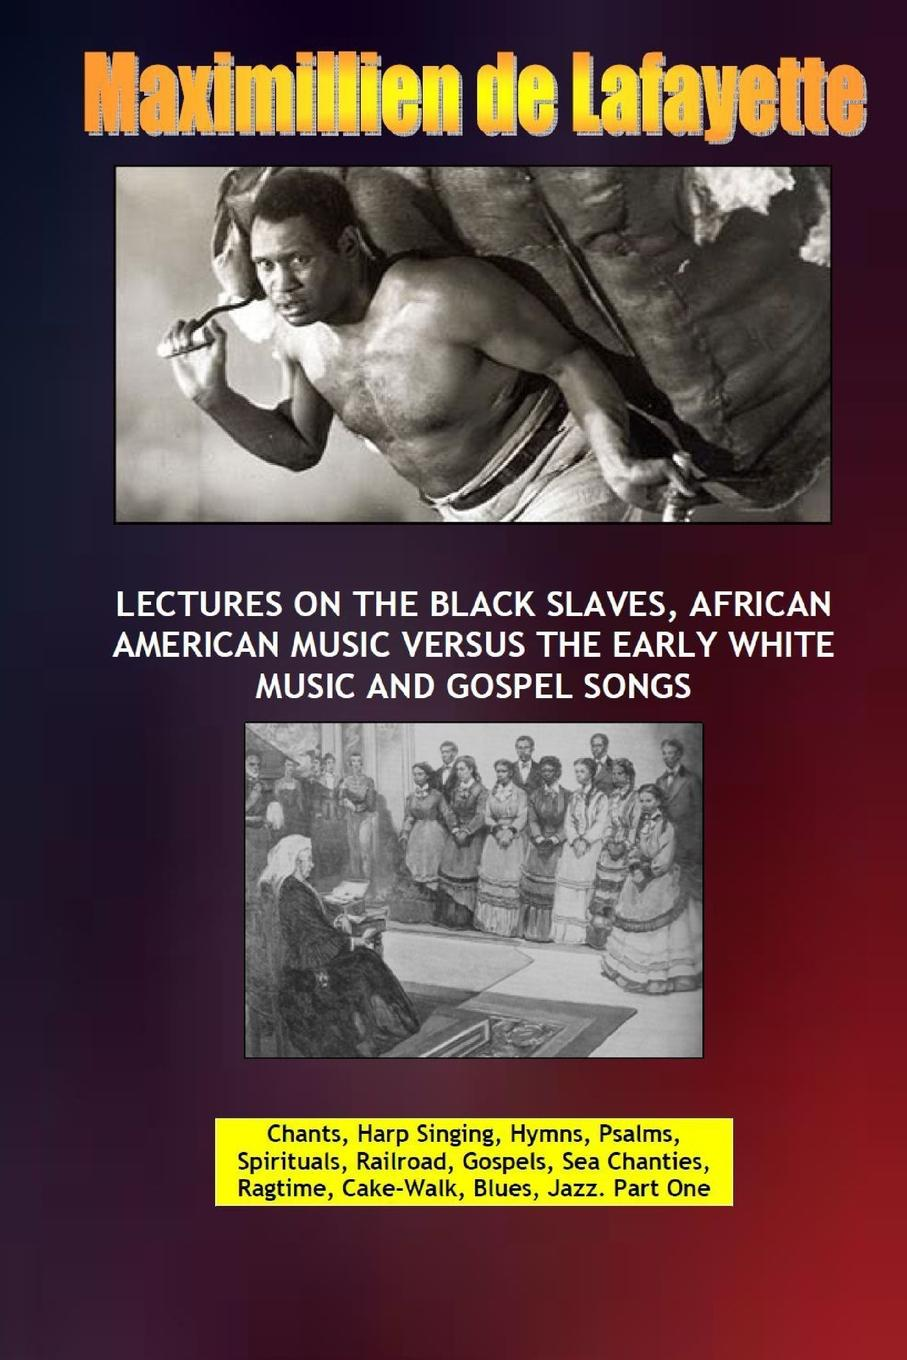 Maximillien De Lafayette Lectures on the Black Slaves, African American Music Versus the Early White Music and Gospel Songs коллектив авторов union harp and history of songs